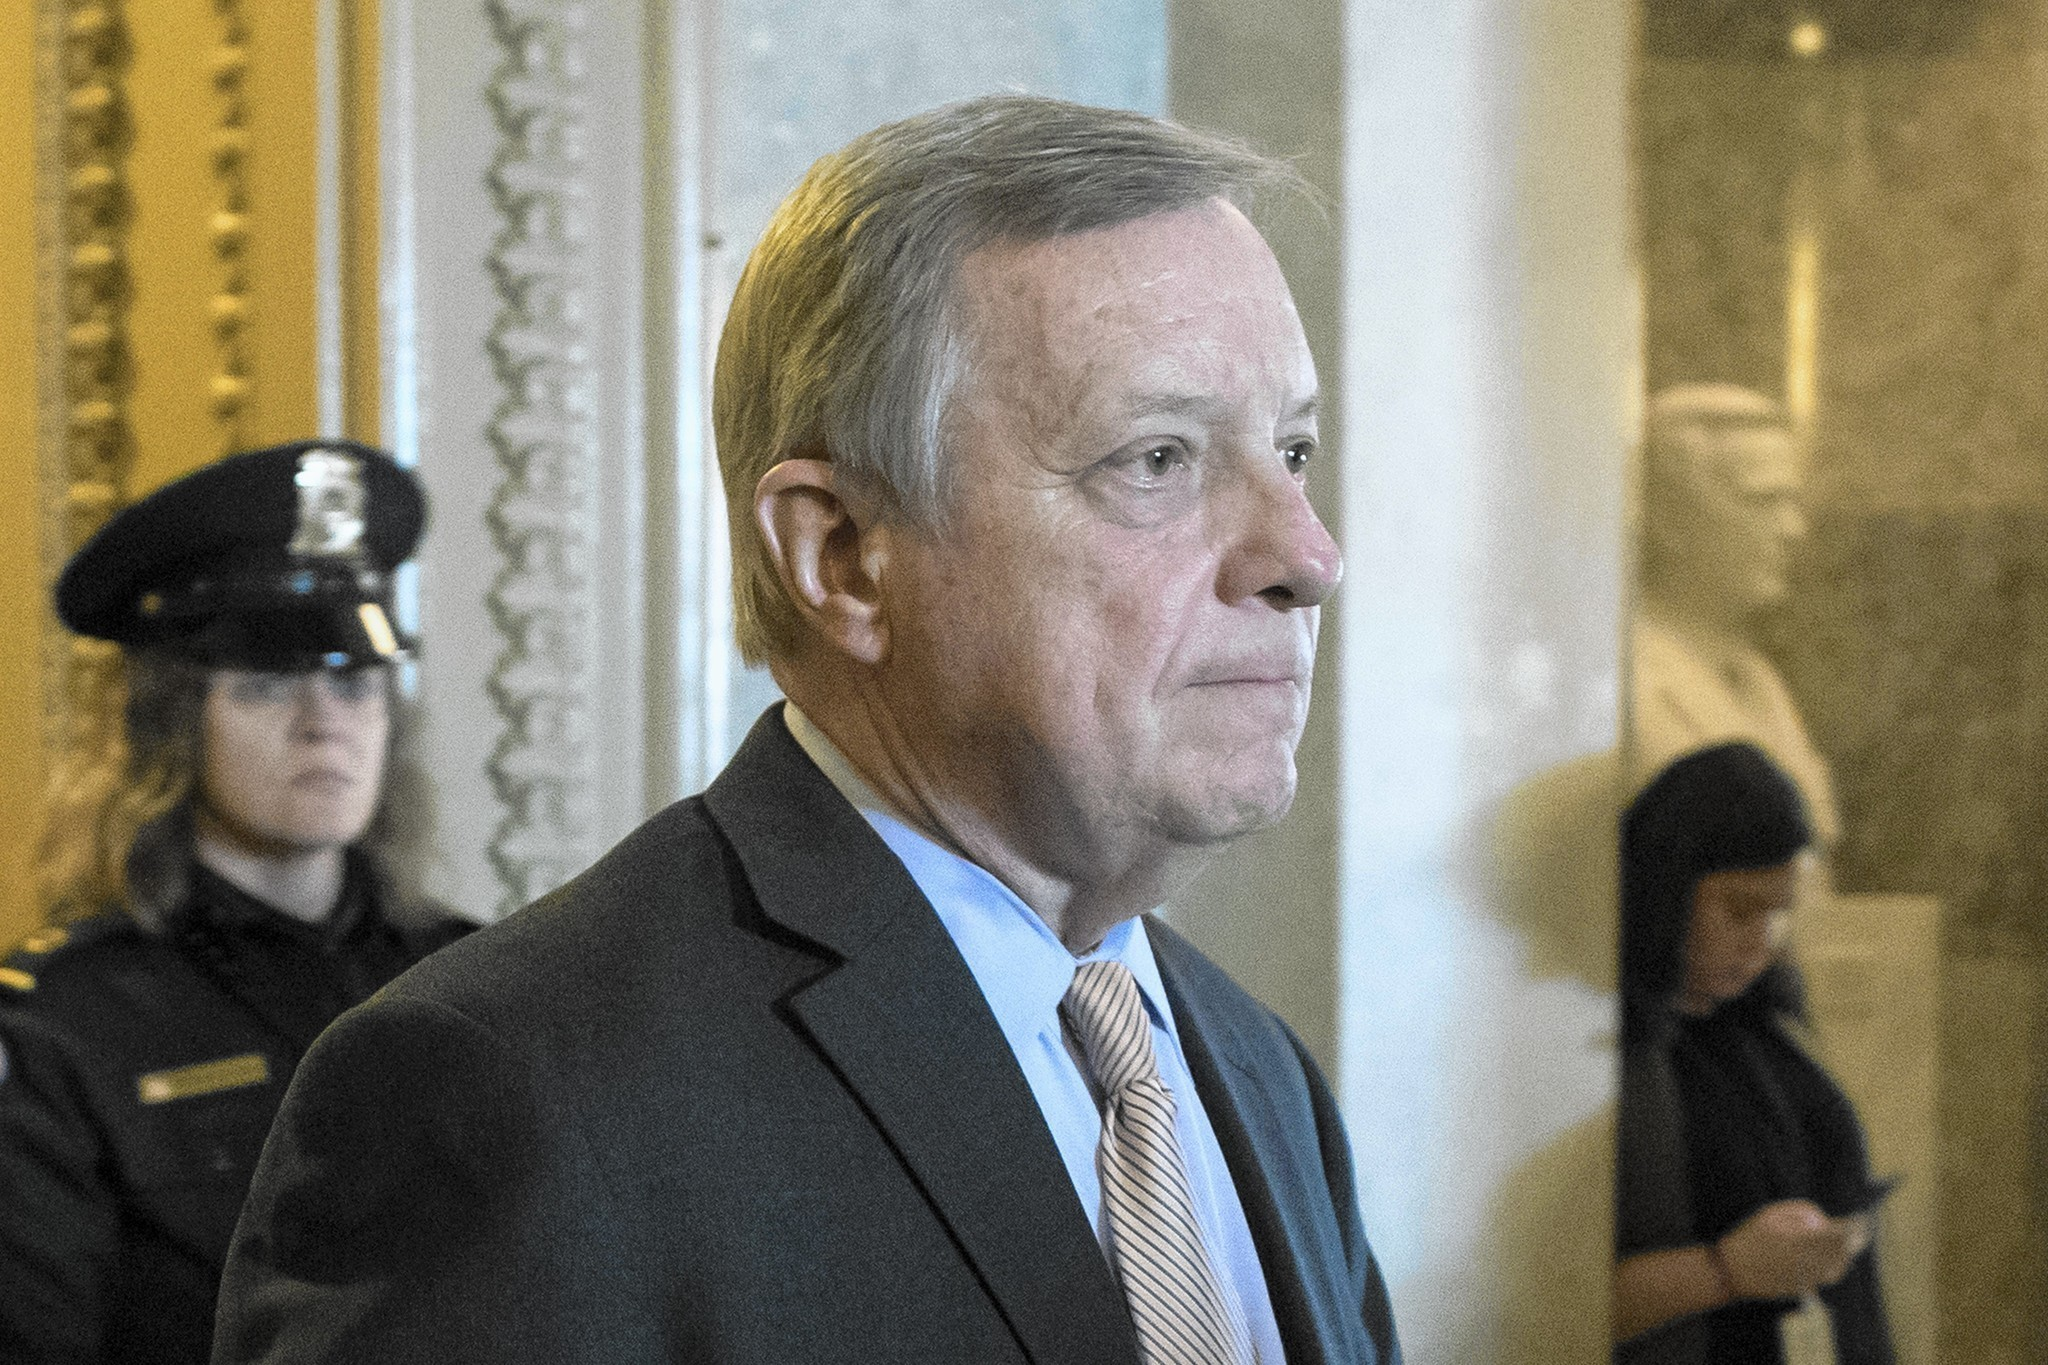 senator dick durbin address jpg 1152x768